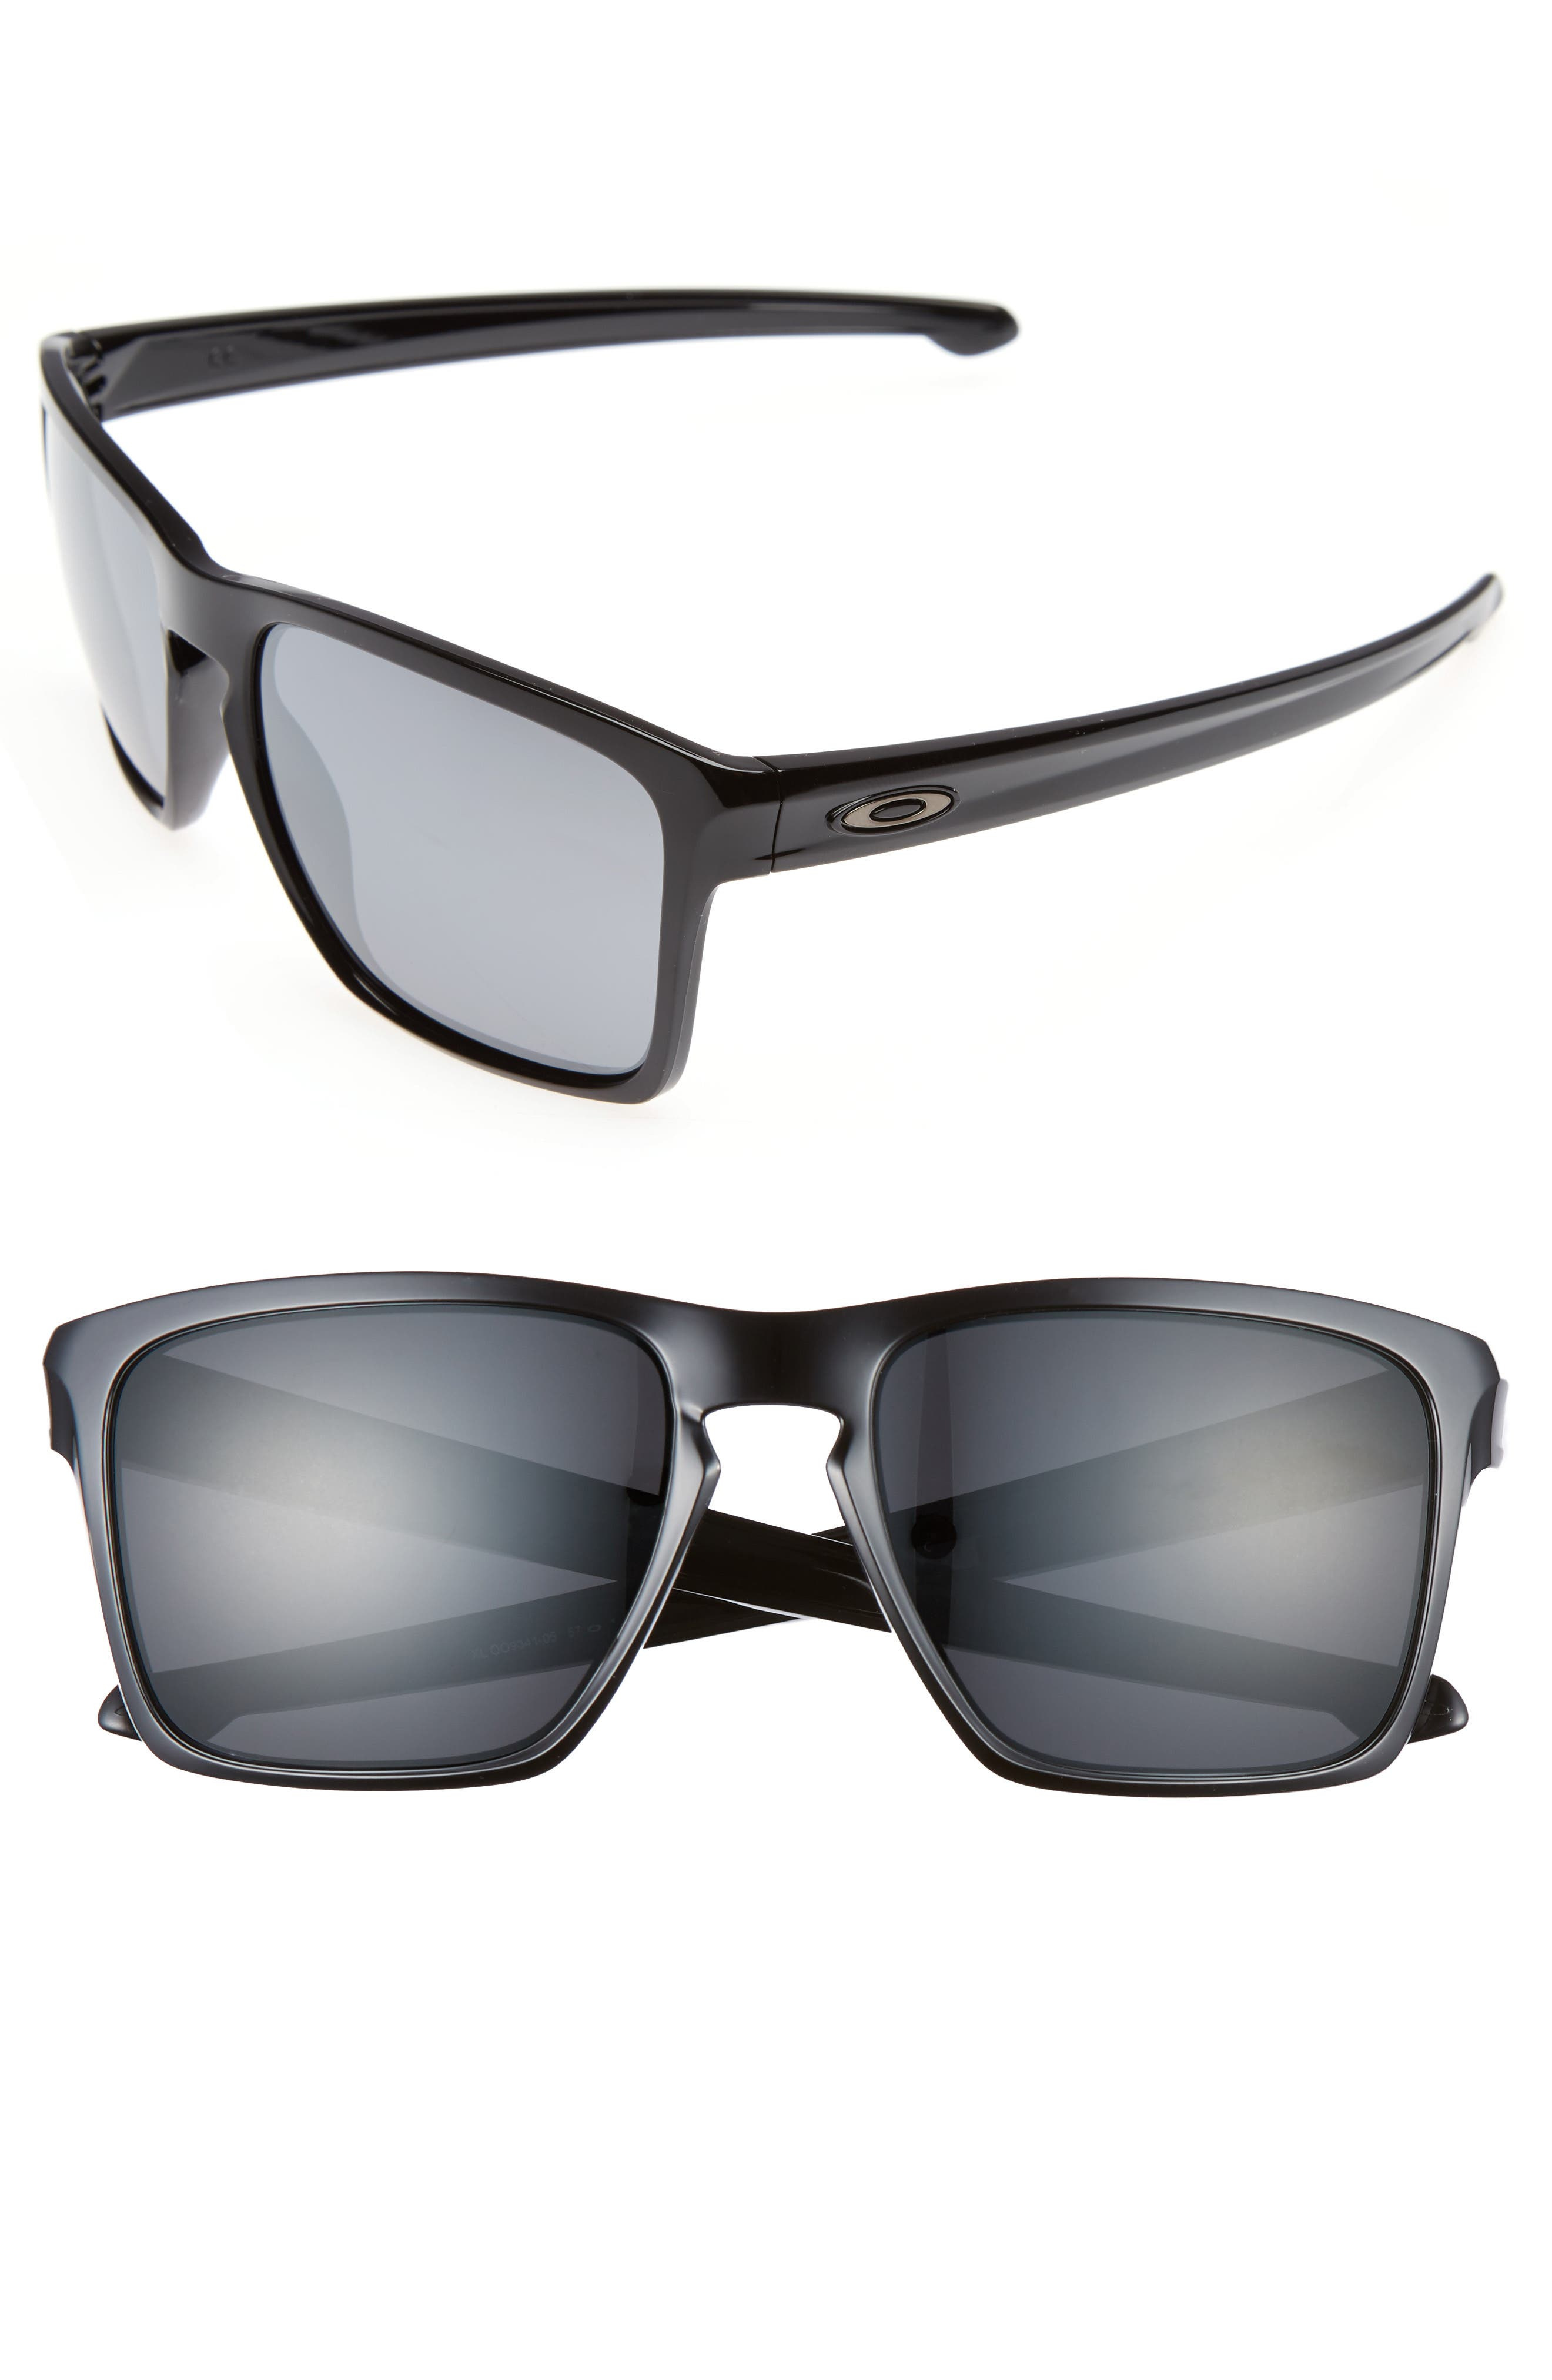 Silver XL 57mm Sunglasses,                         Main,                         color, 001